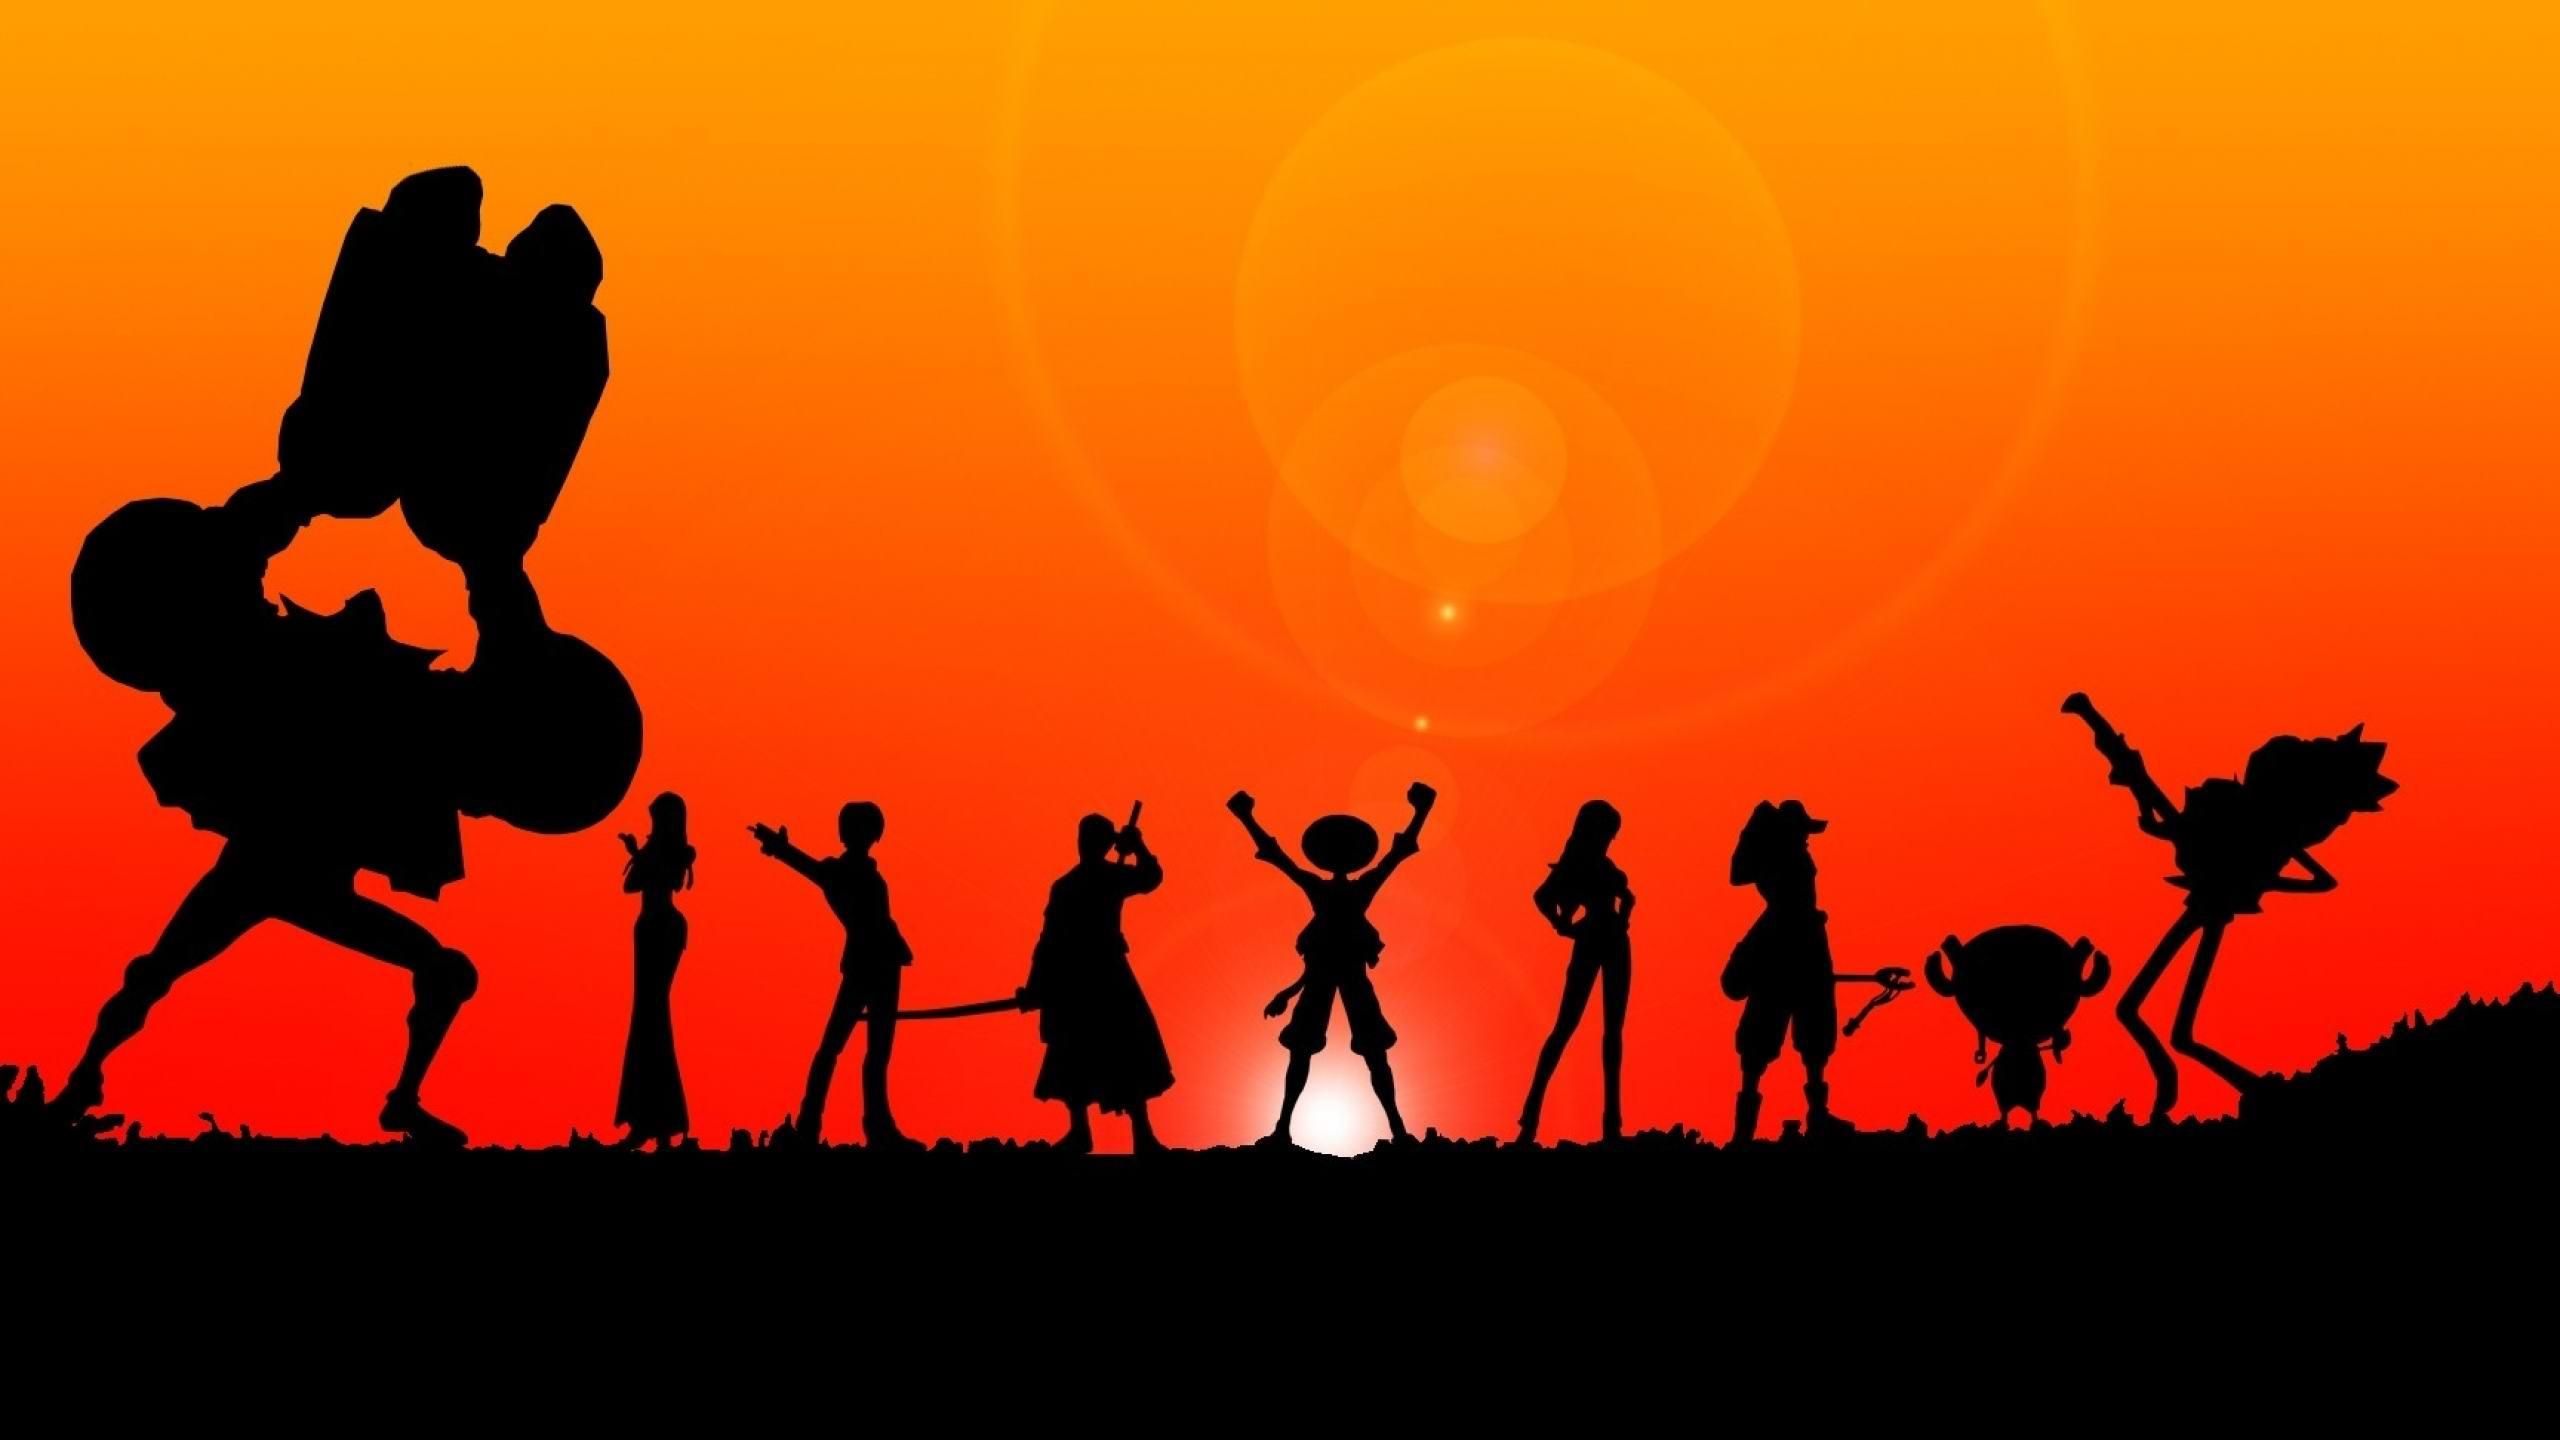 One Piece New World Wallpaper One Piece Anime Anime Backgrounds